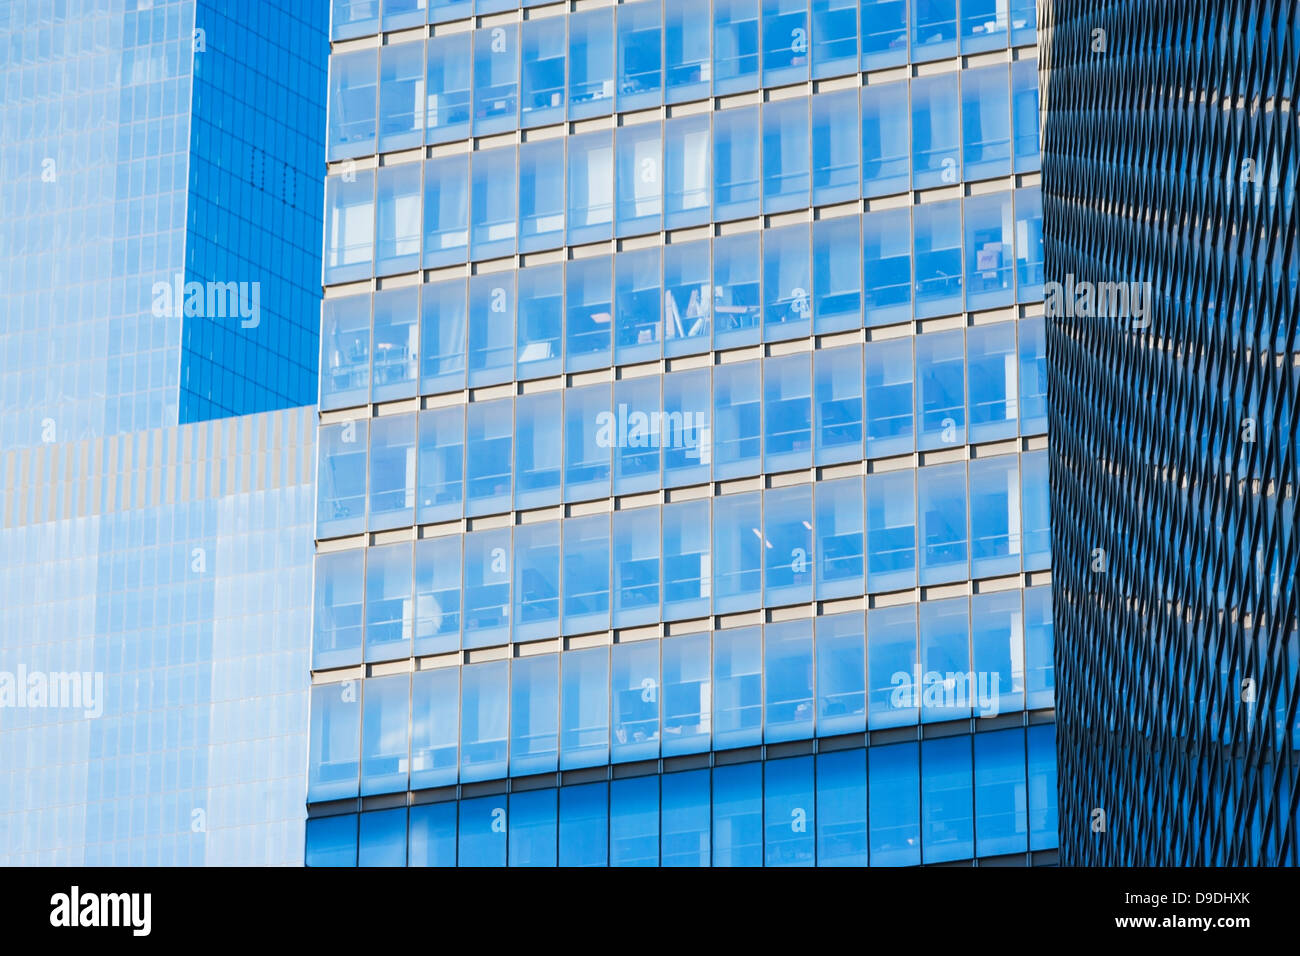 Abstract of office building exteriors - Stock Image